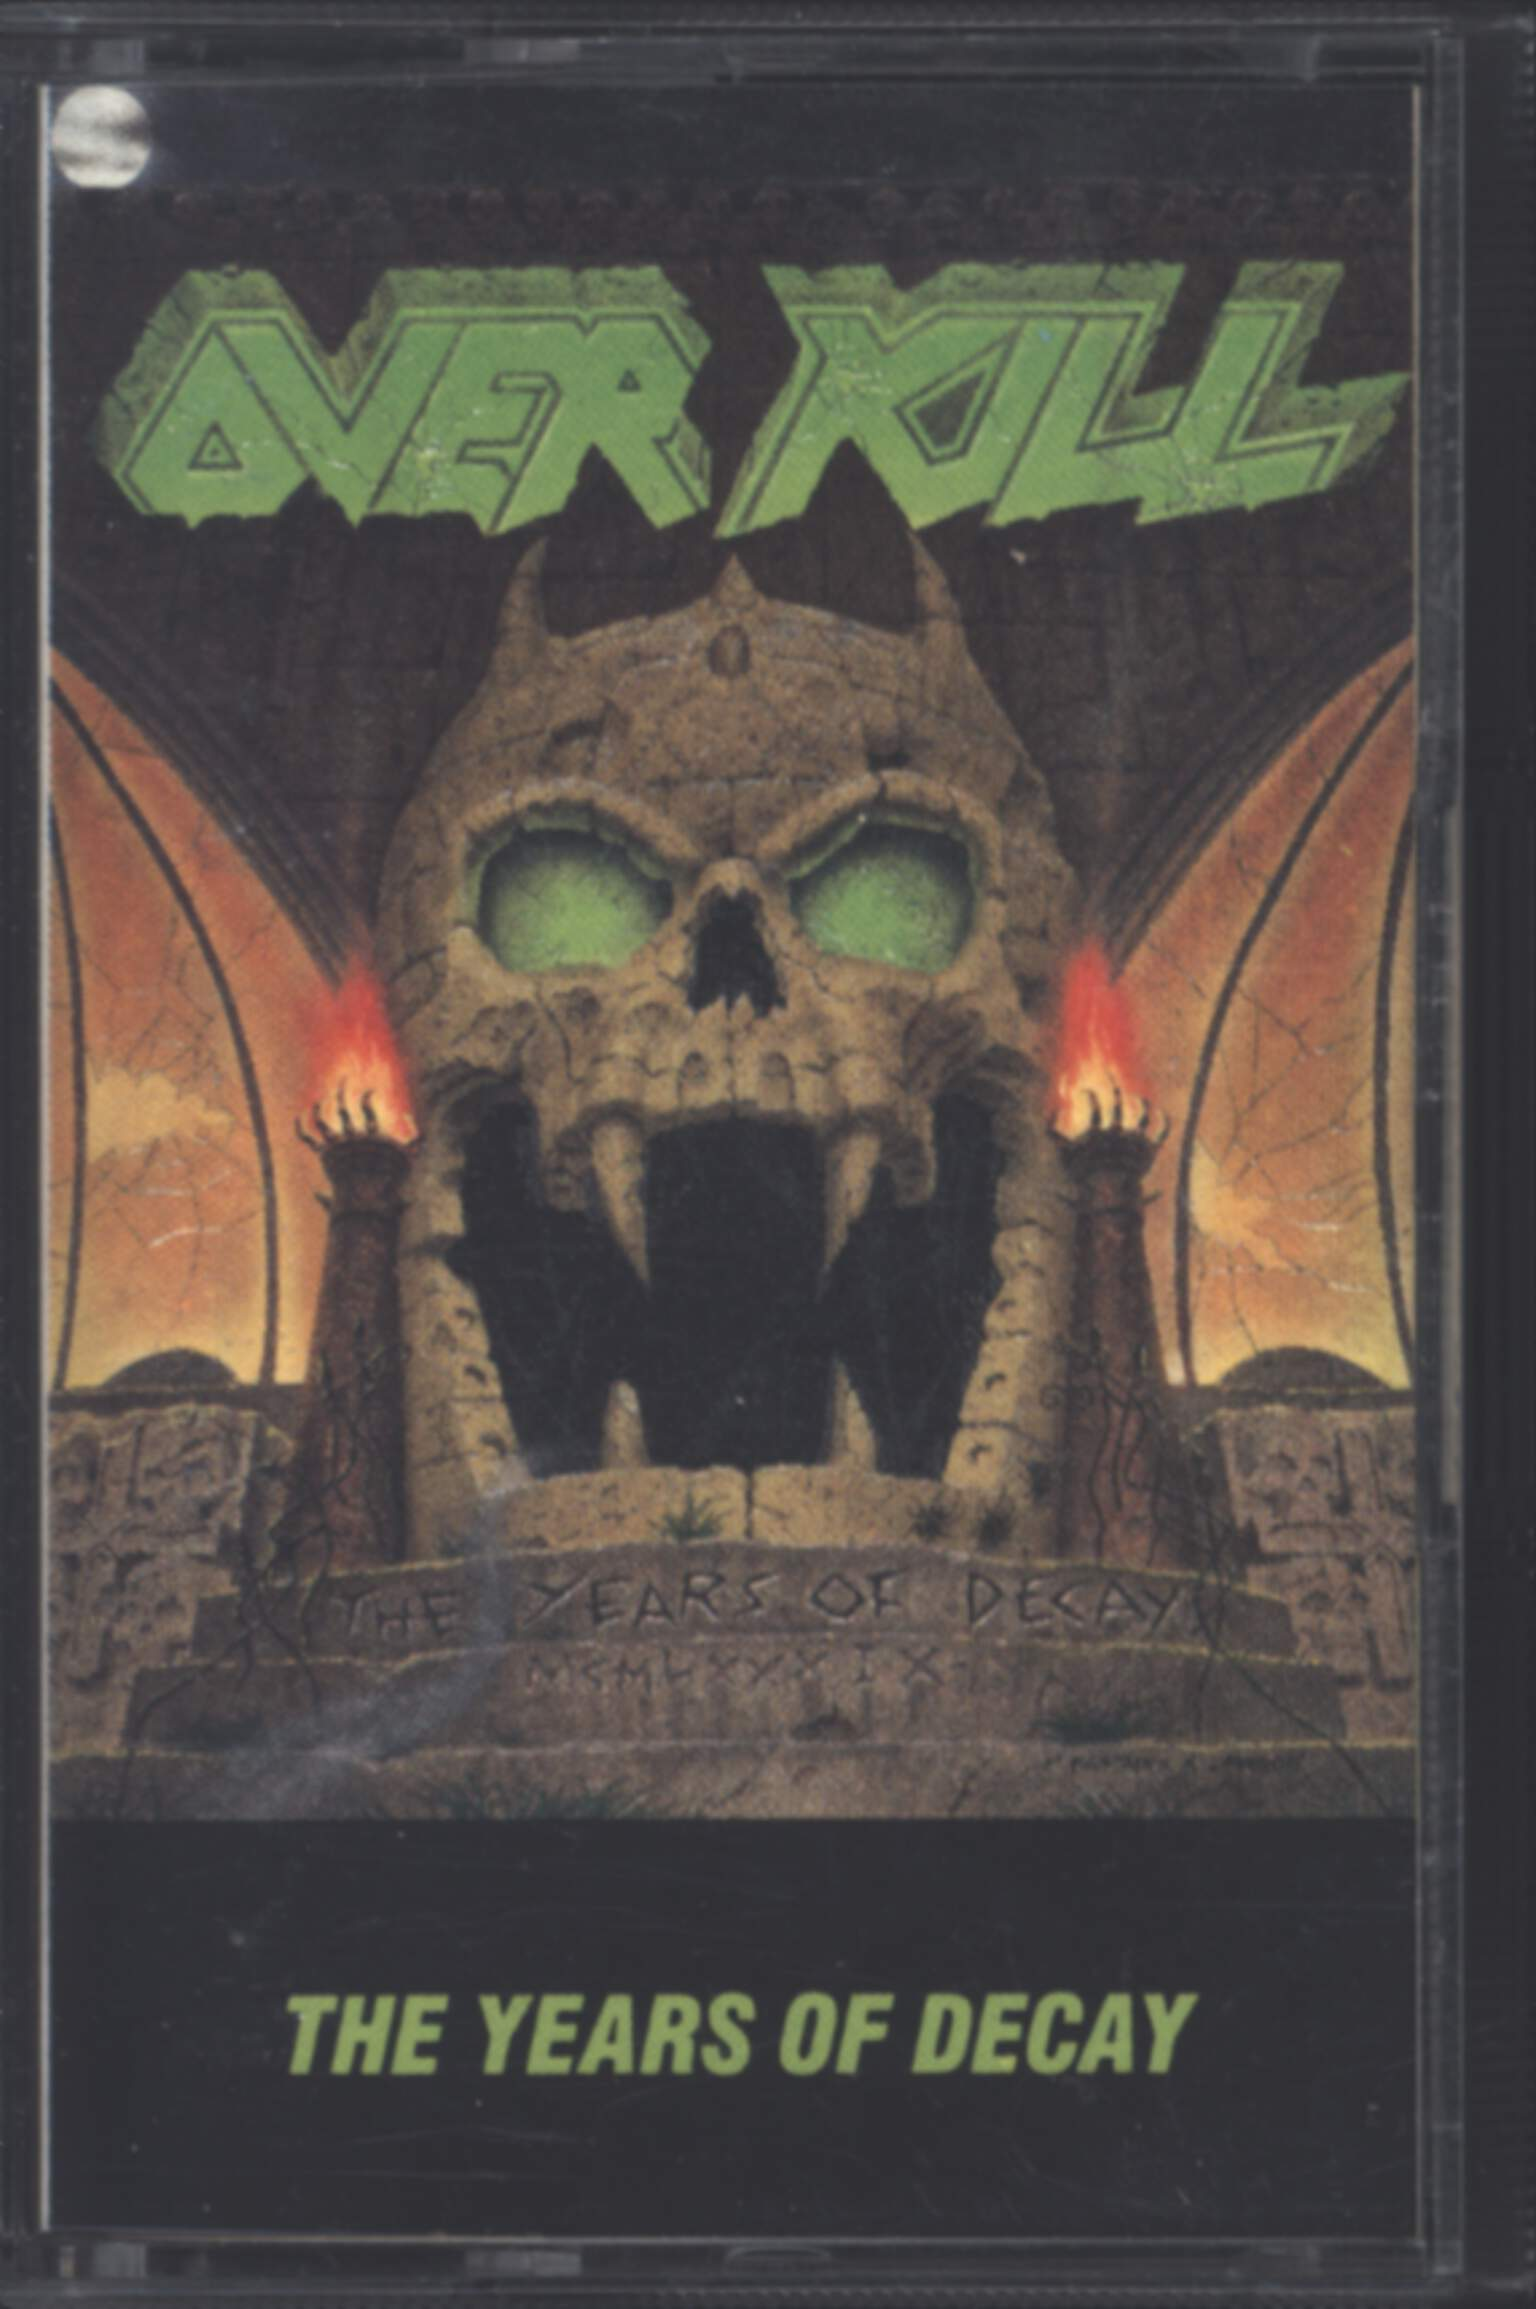 Overkill: The Years Of Decay, Compact Cassette